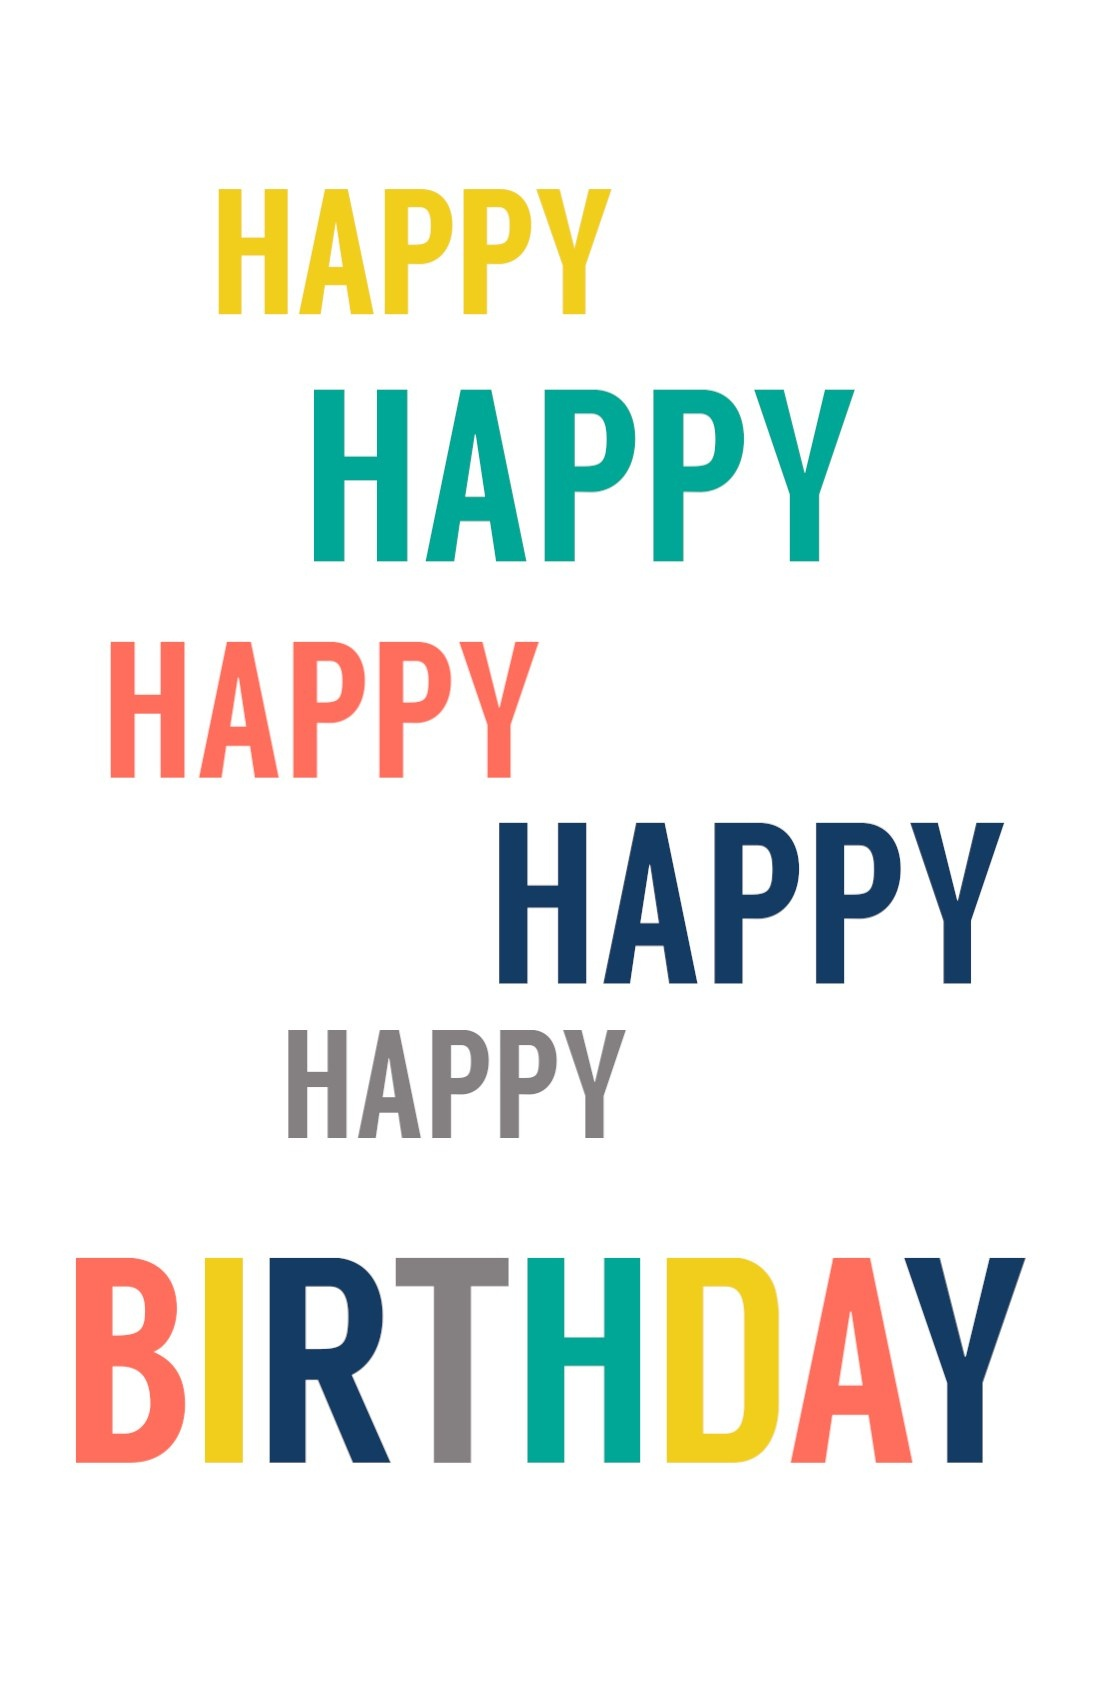 Free Printable Birthday Cards - Paper Trail Design - Free Printable Birthday Cards